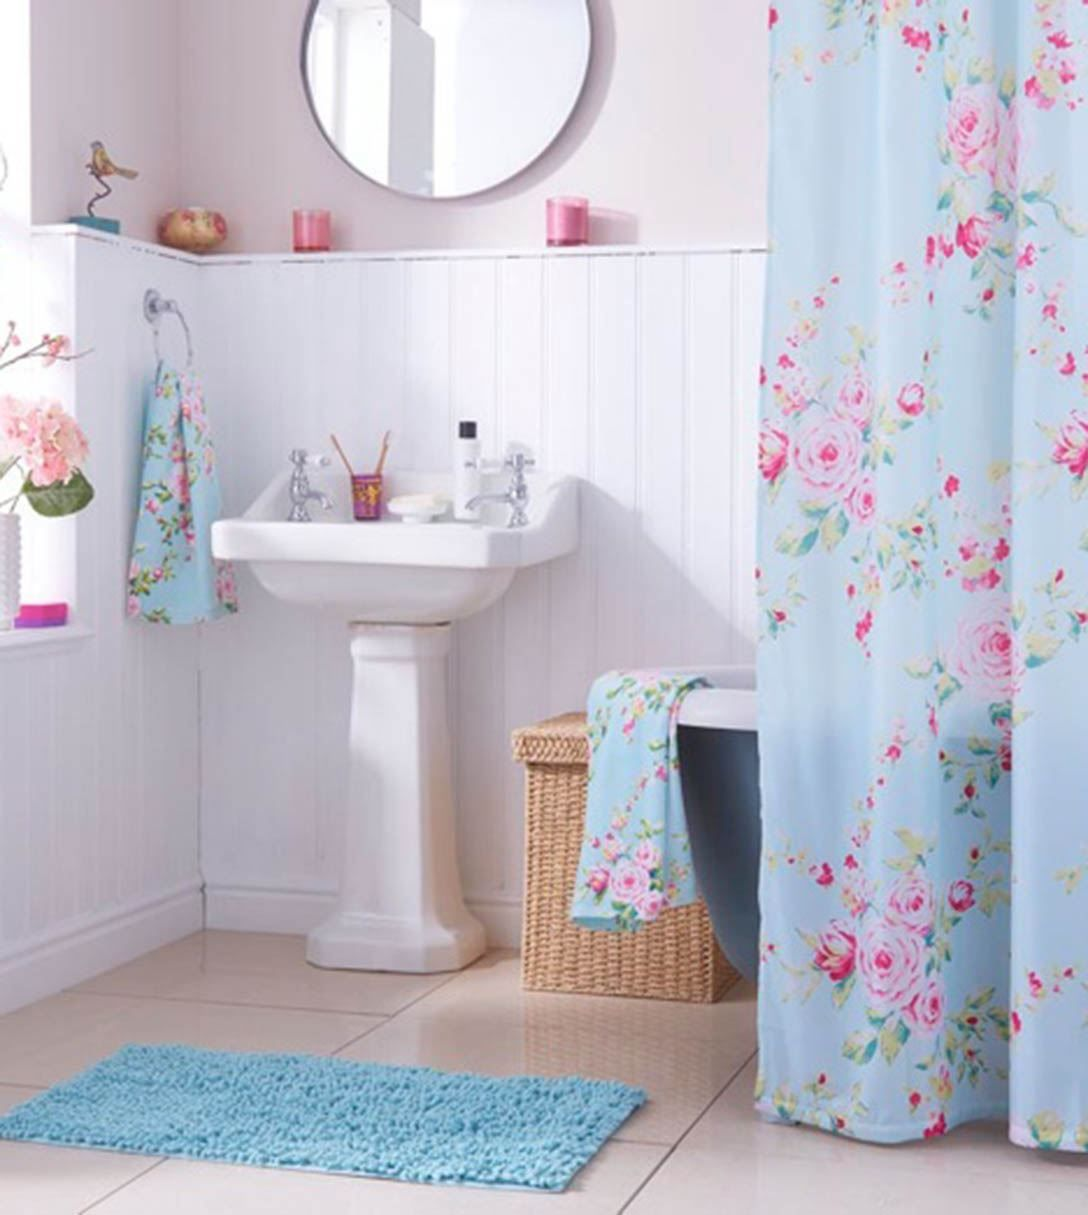 Looks Cute Floral Shower Curtainpink And Baby Blue Together - Floral bath towels for small bathroom ideas